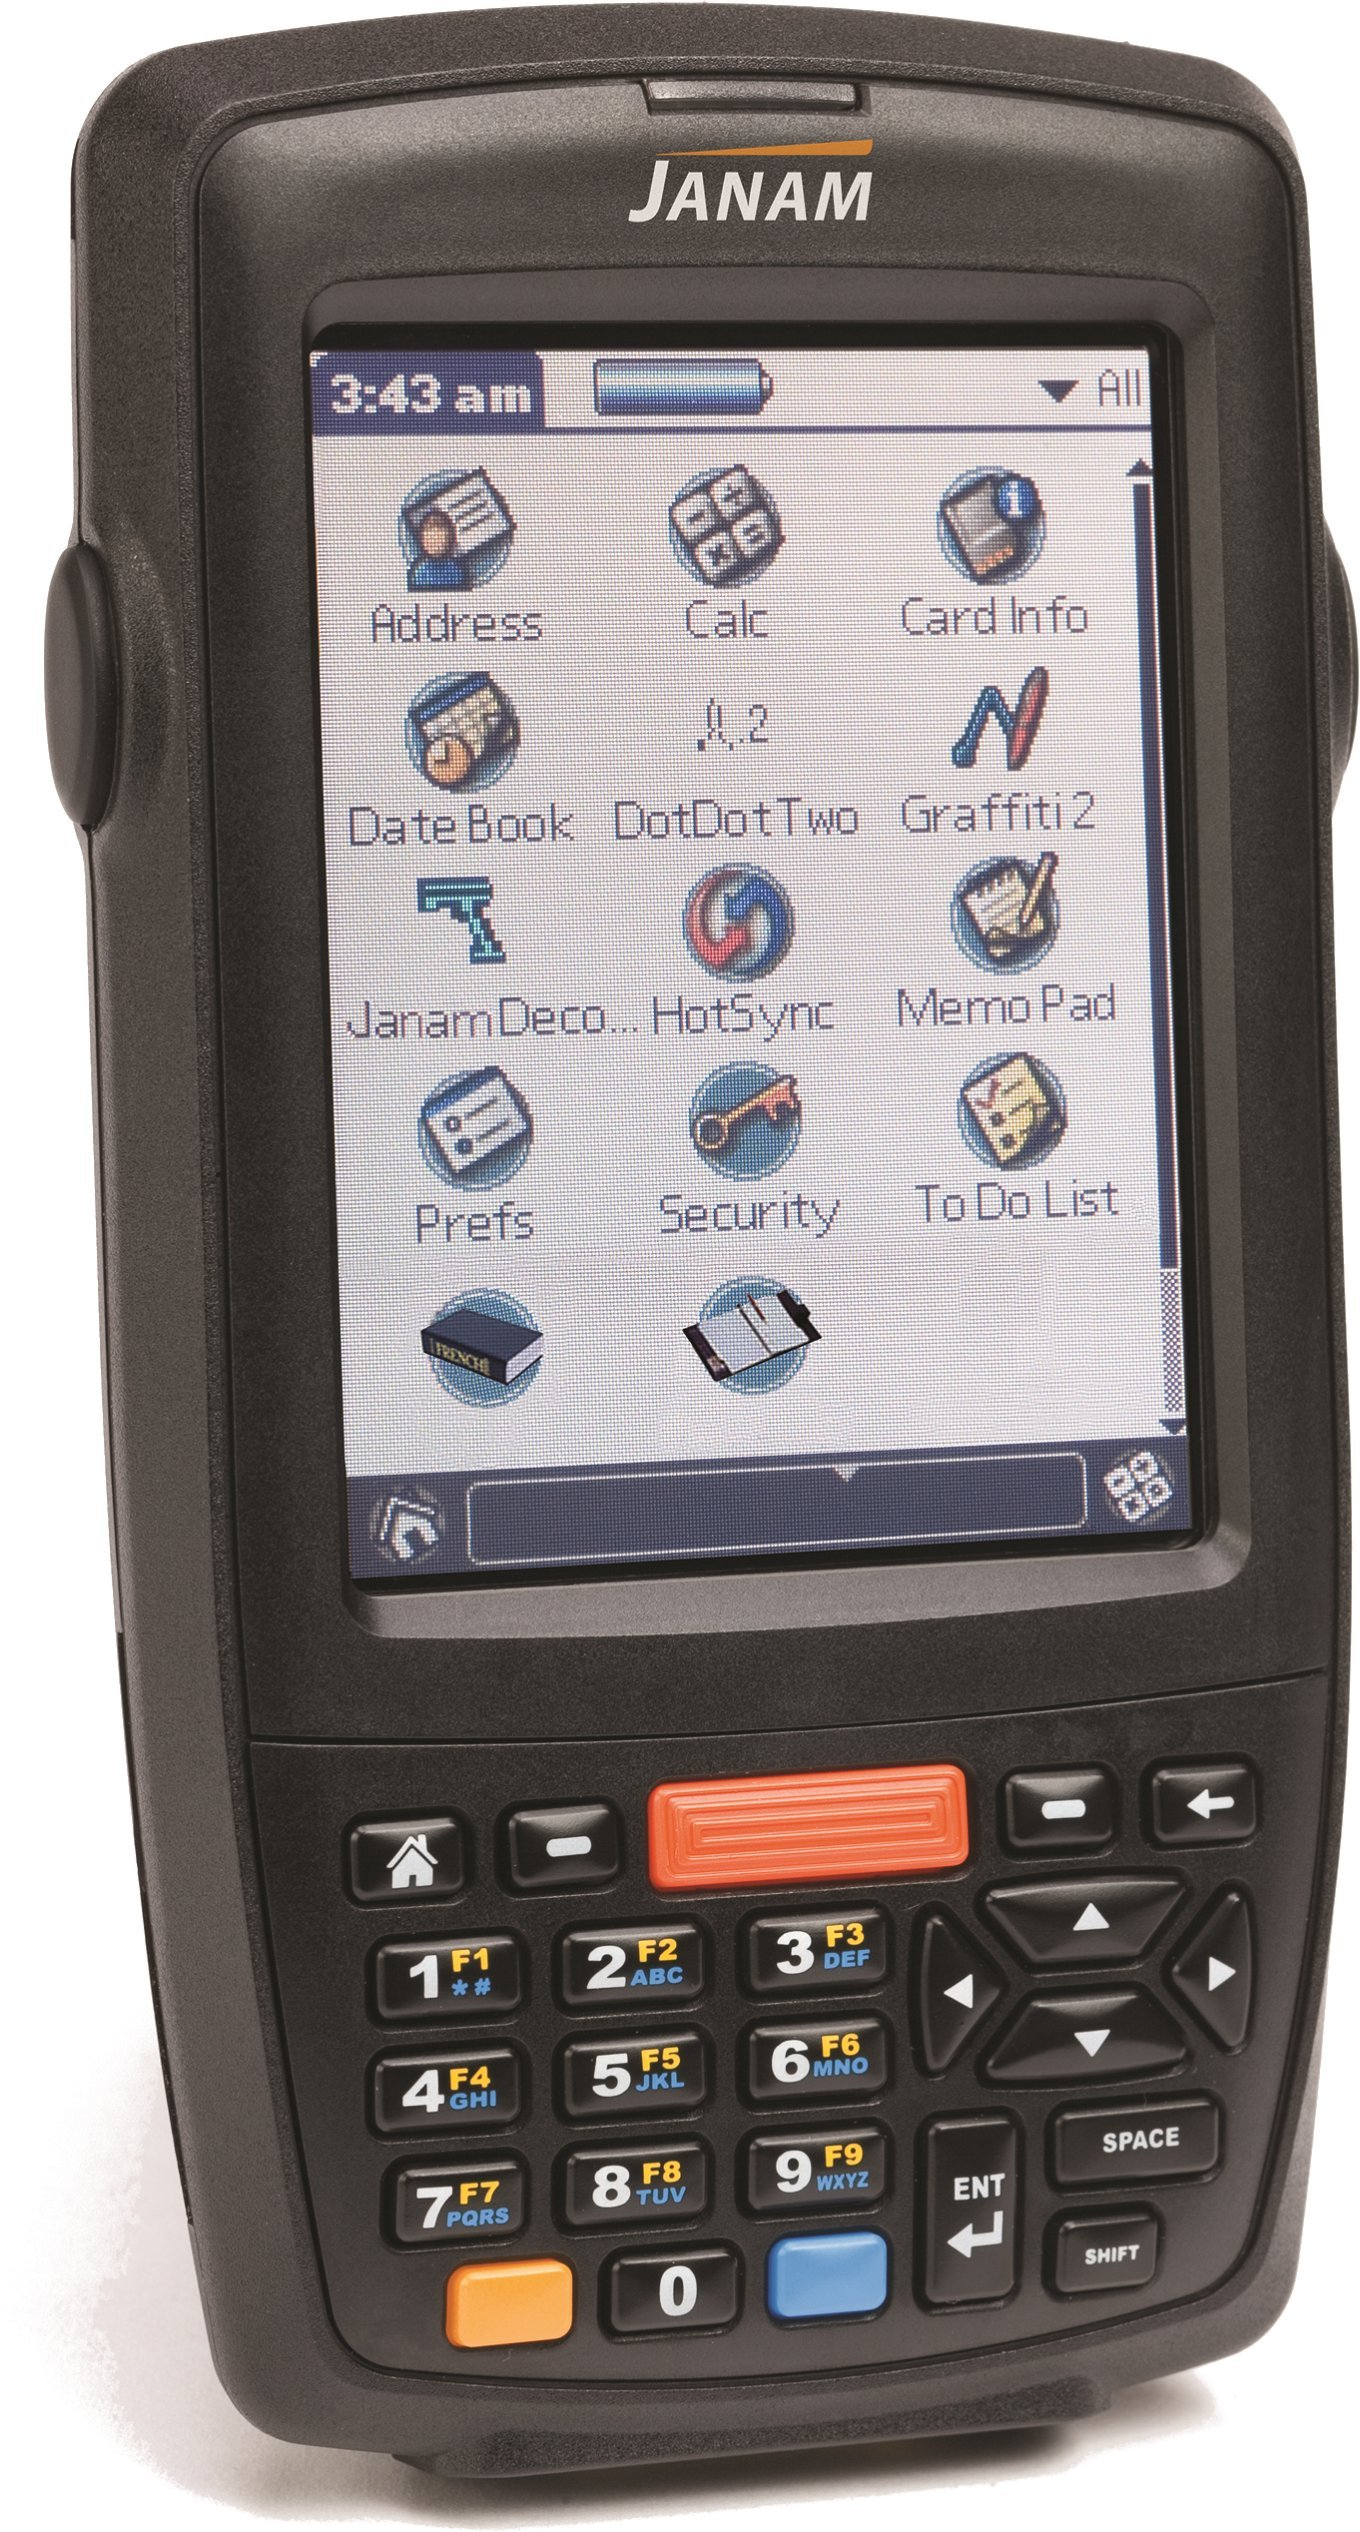 Janam XM66N-1NXFBV00 Series XM66 Handheld Computing Devices, Rugged PDA, BT, Win Mobile 6.1, 256 MB/256 MB, 2D Imager, Numeric Keypad, 3.5'' Color Display, Micro SD Slot by JANAM